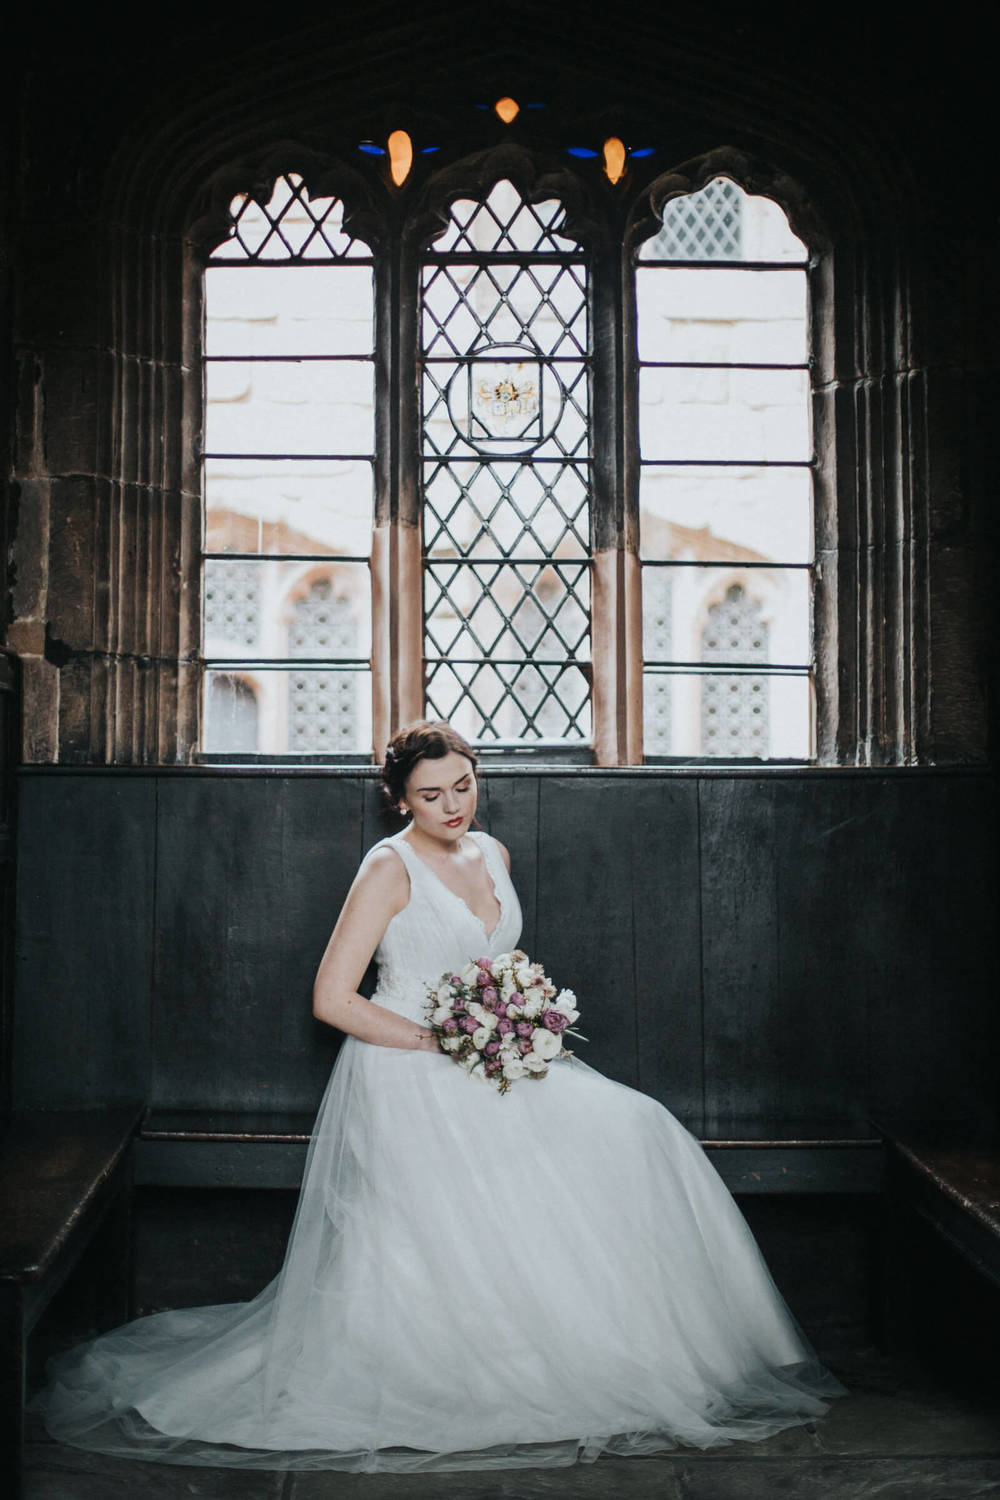 Manchester Wedding Photographer Stephen McGowan Chethams School of Music 13.jpg